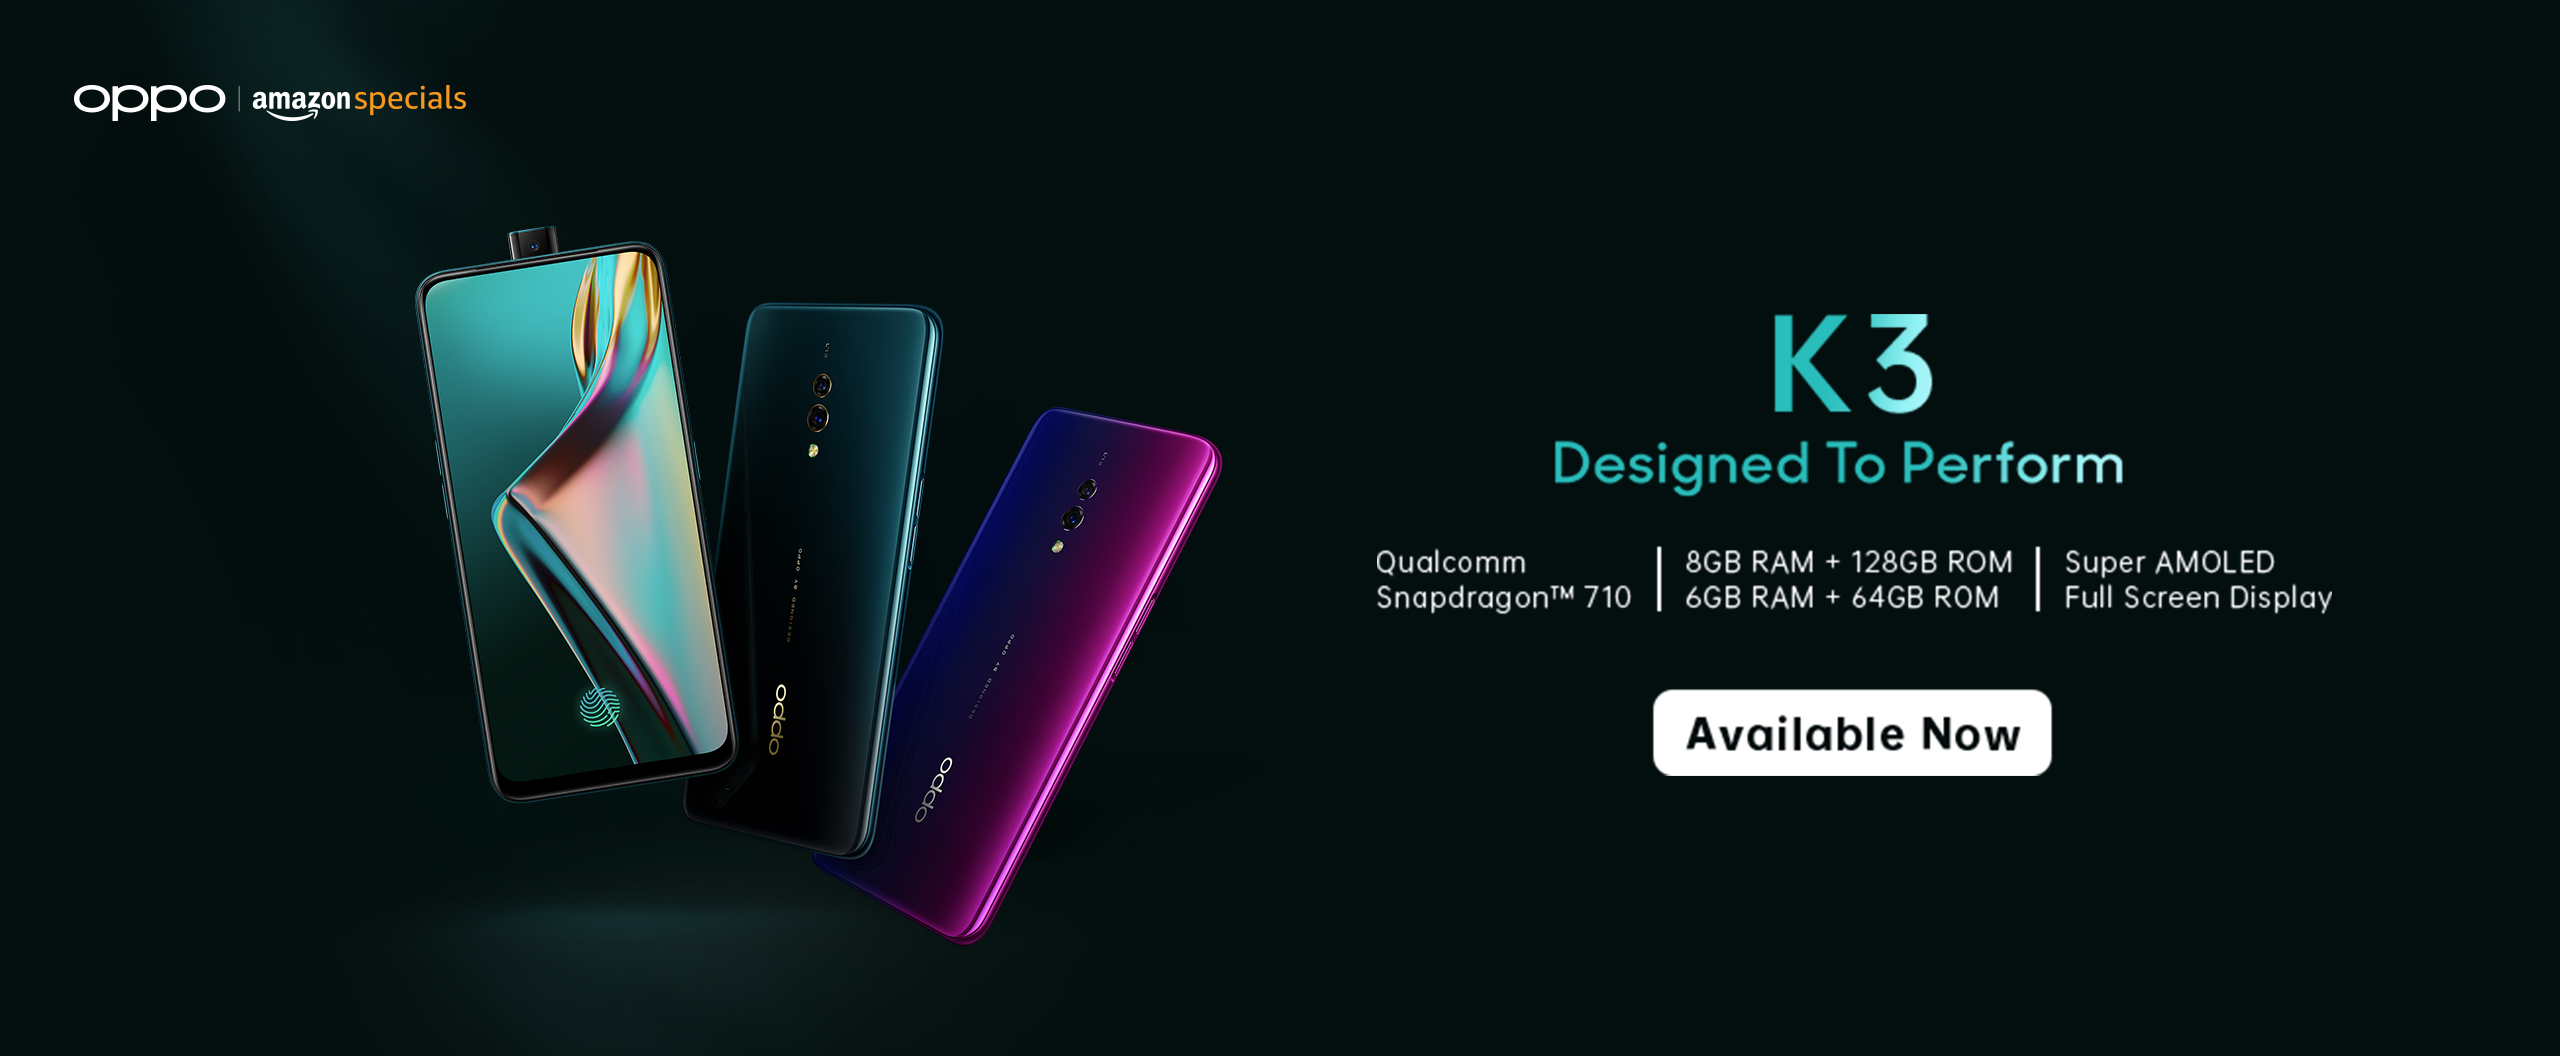 OPPO K3 with Pop Up Camera | K3 Features & Specifications